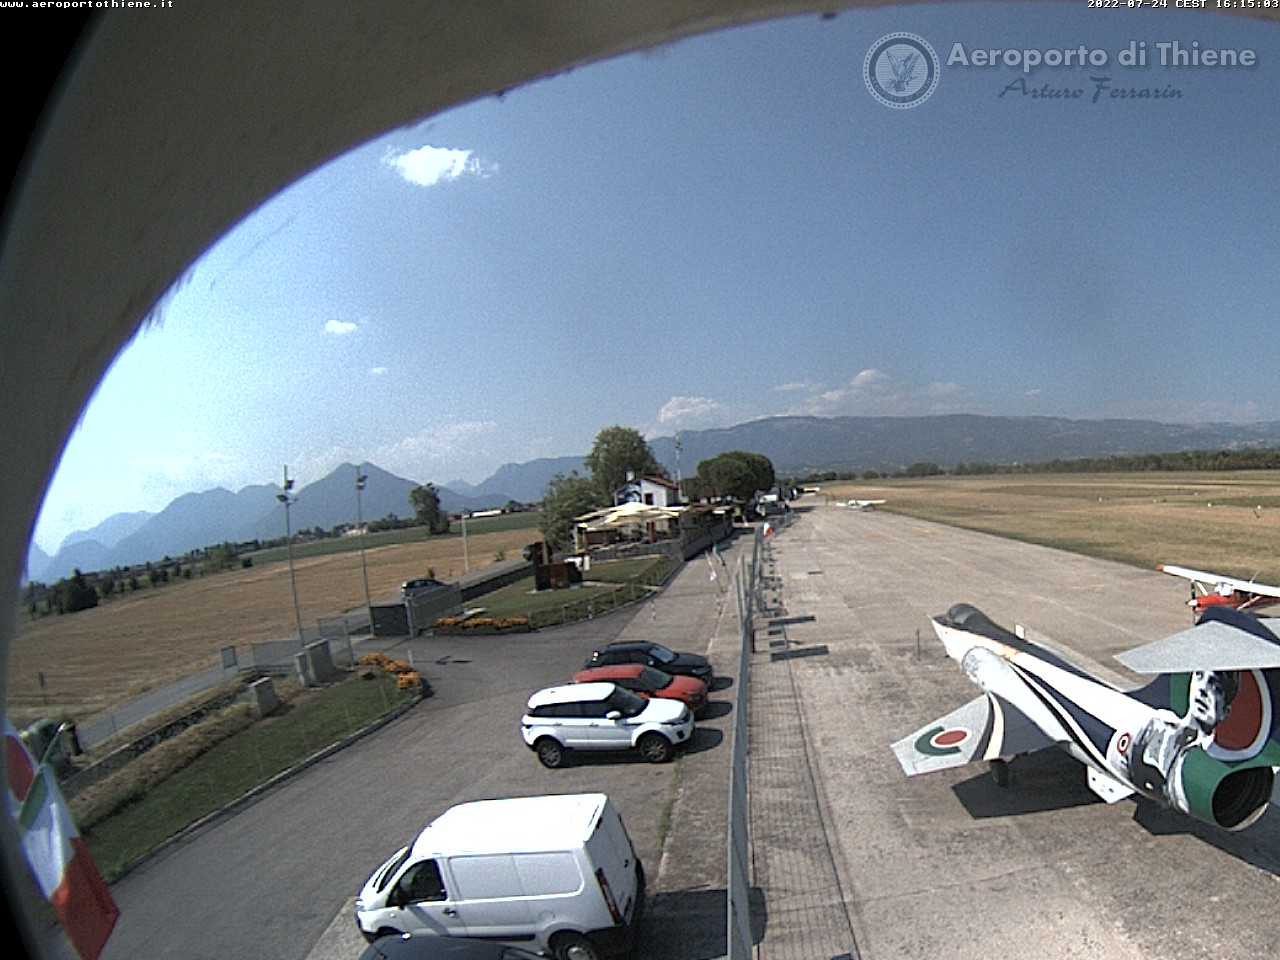 Webcam Aeroporto Thiene VI